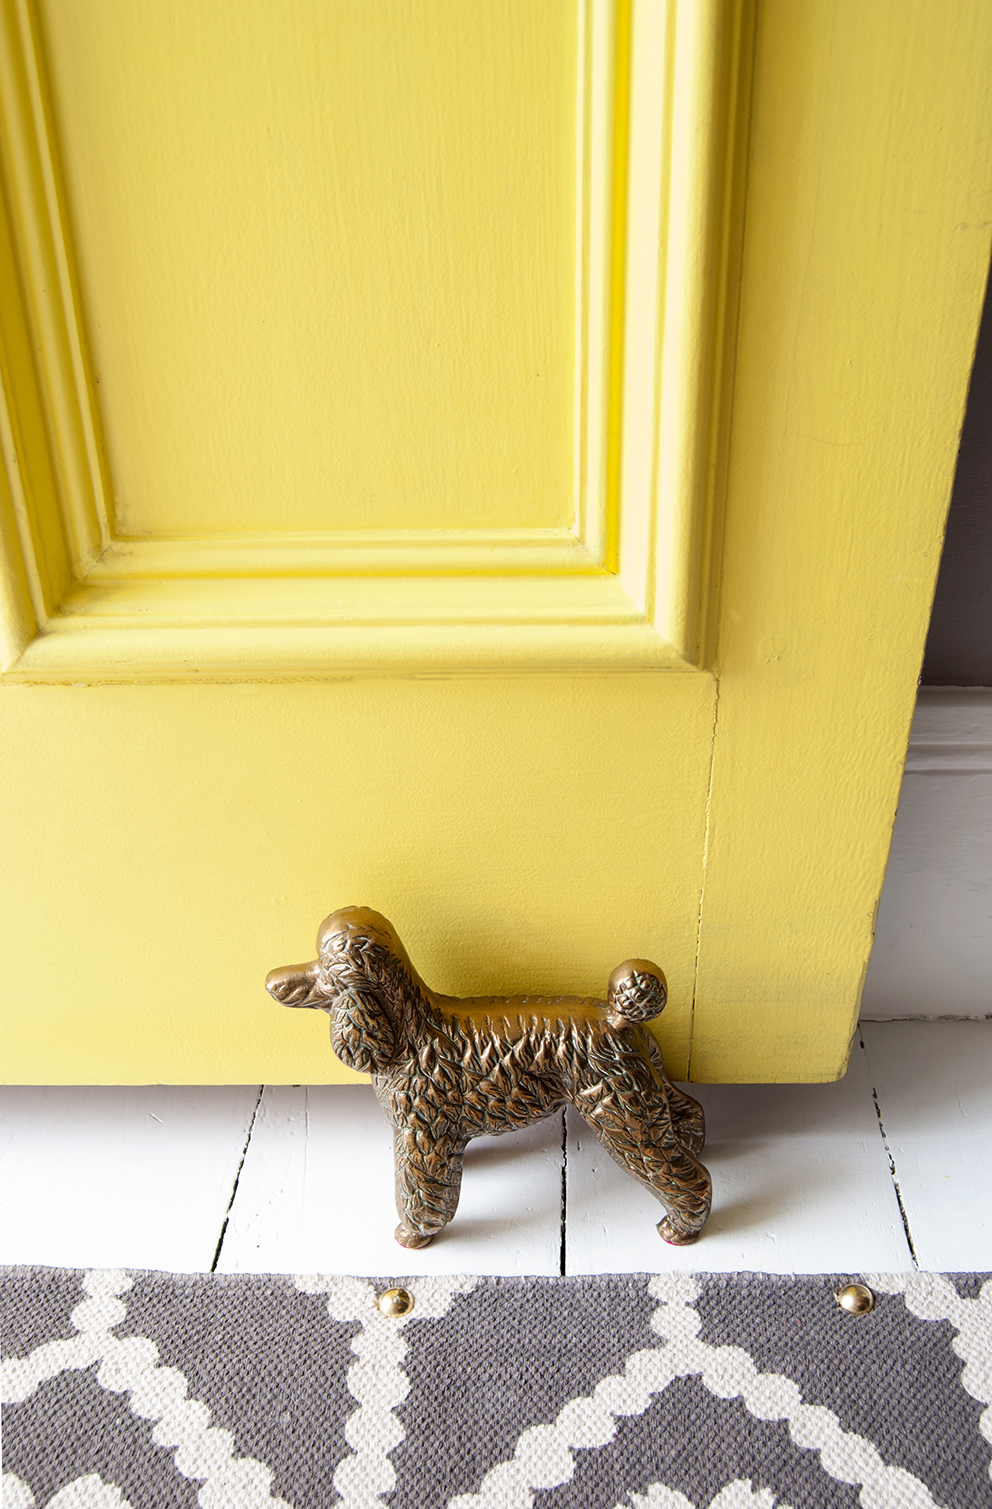 Brass poodle doorstop in front of yellow door with white painted floorboards and rug